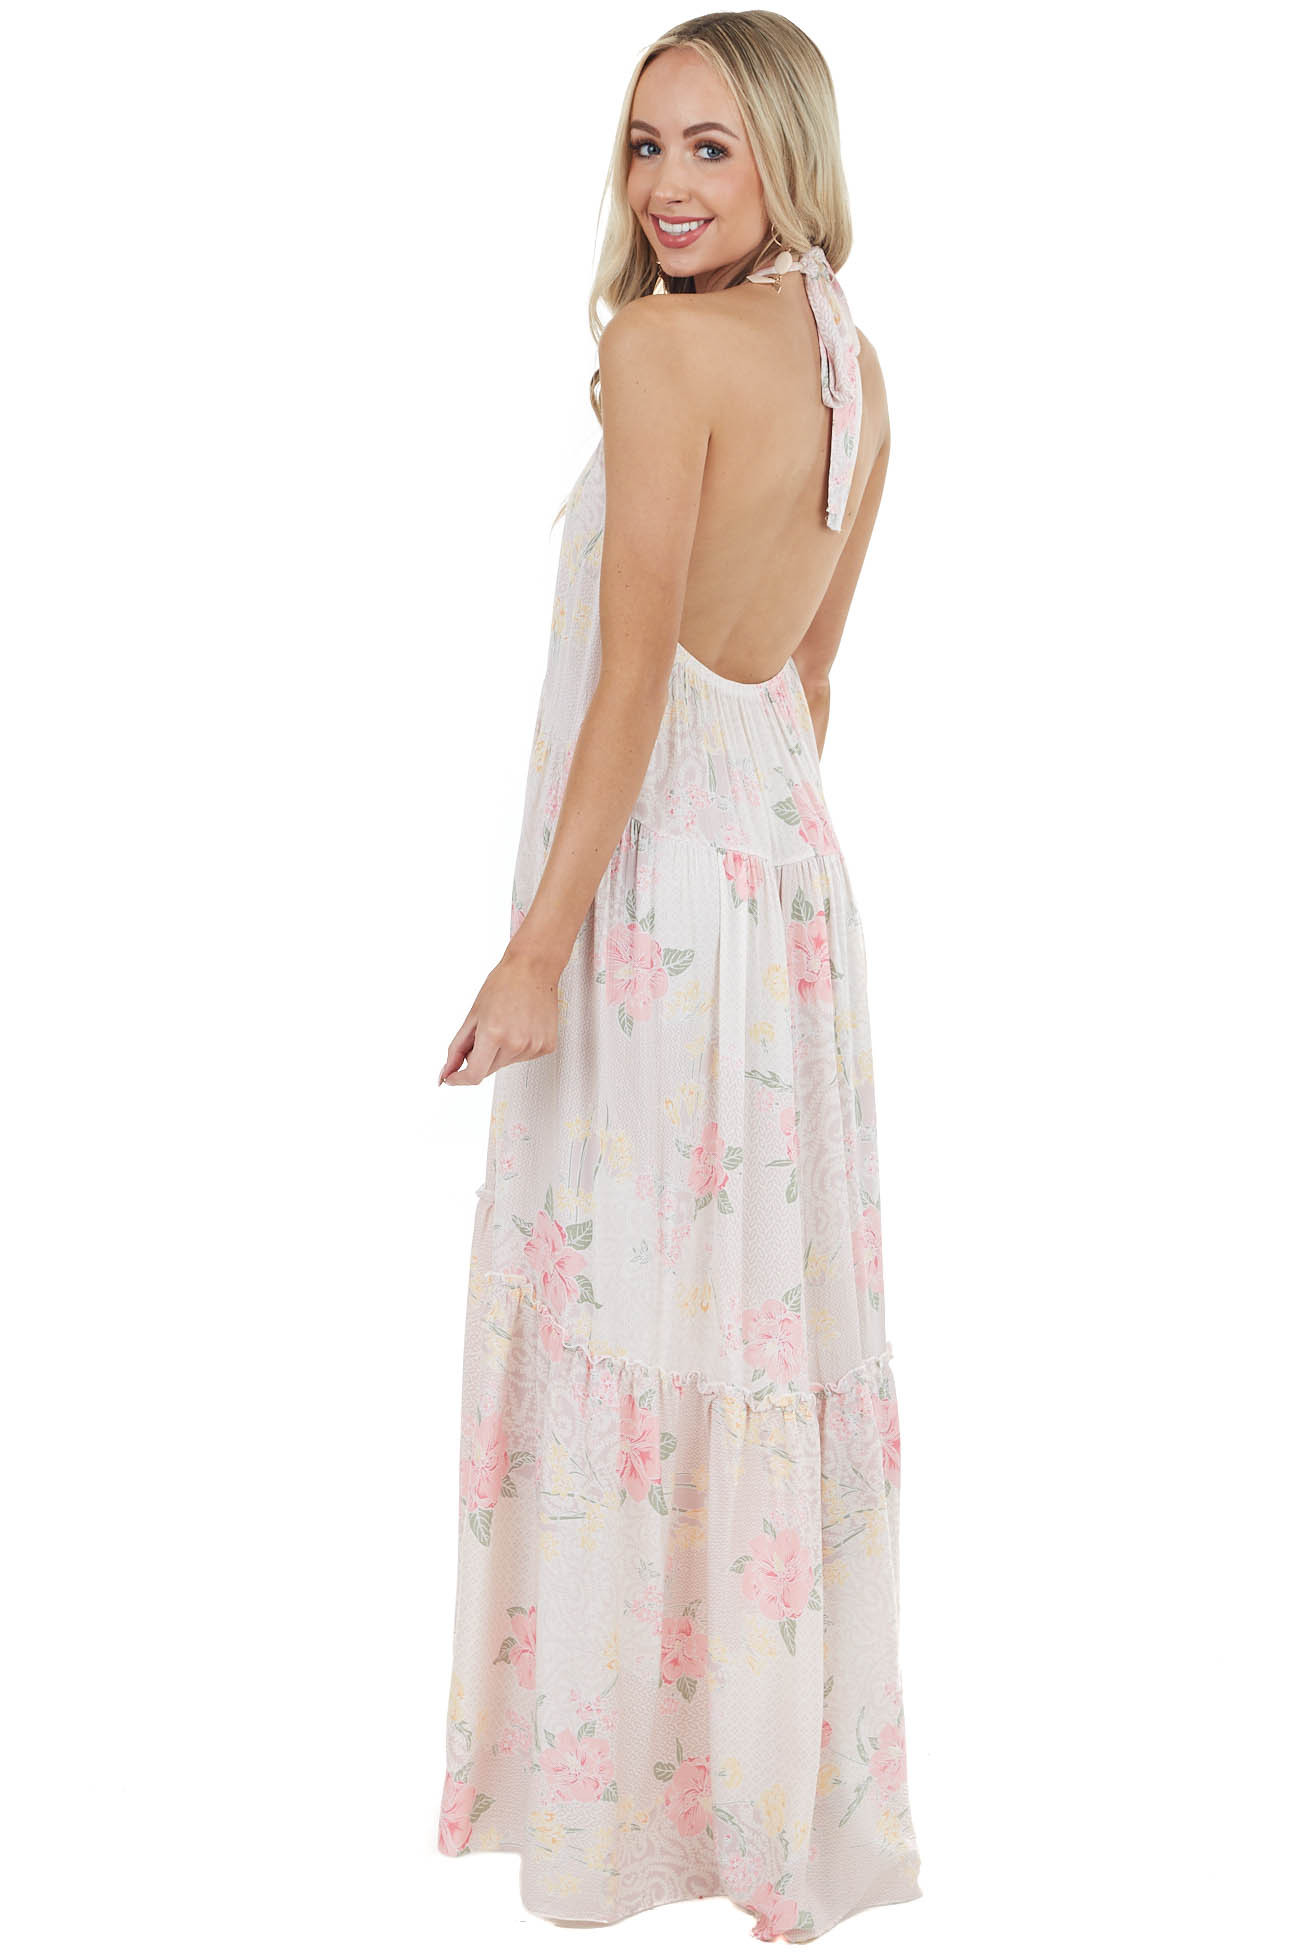 Dusty Rose Floral Open Back Maxi Dress with Halter Neckline